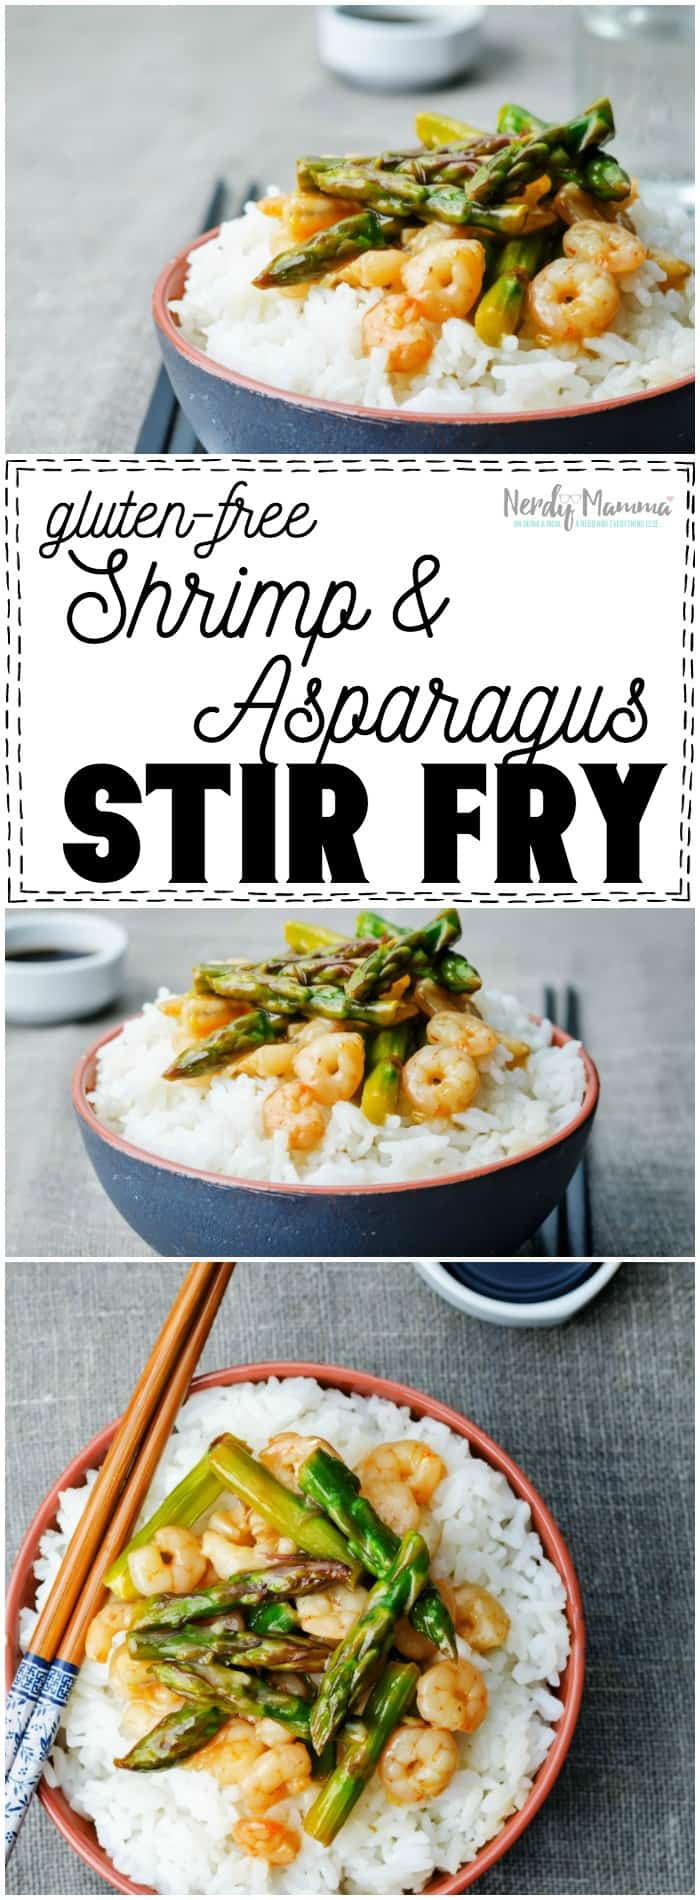 I absolutely LOVE this recipe for gluten-free shrimp stir fry with asparagus. So yummy! I have to pin it.